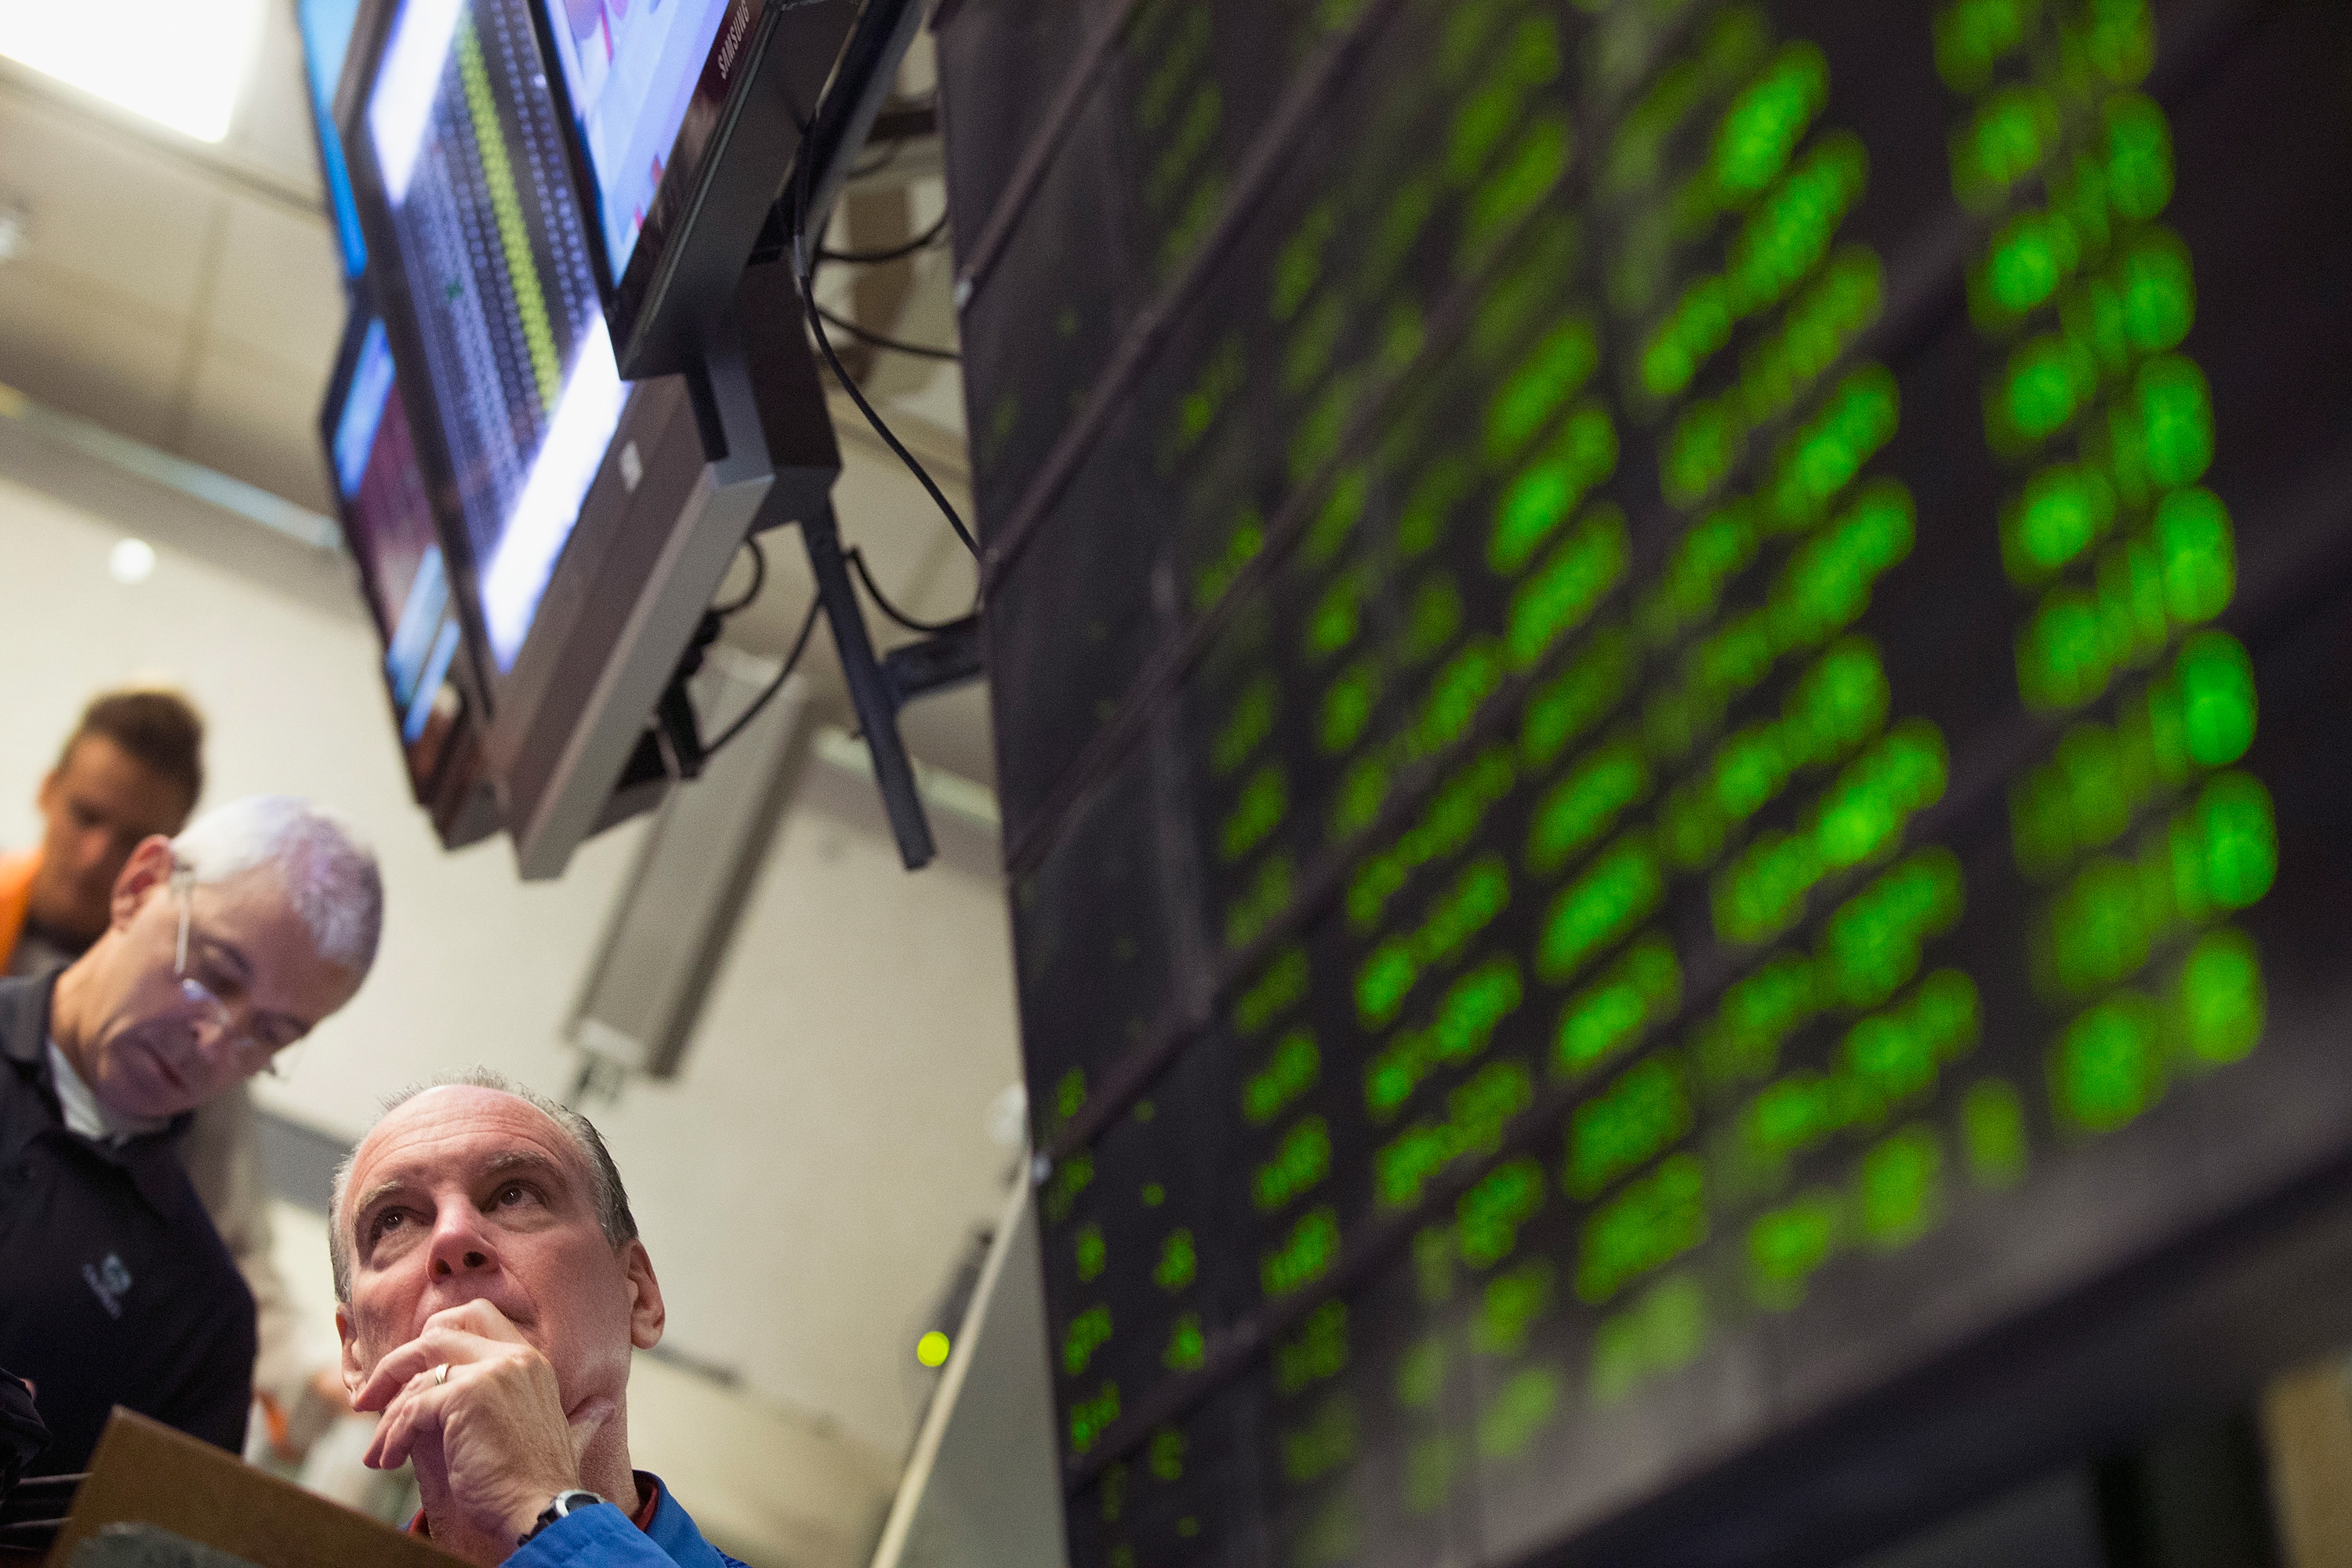 A trader monitors offers in the Standard & Poor's 500 stock index options pit at the Chicago Board Options Exchange (CBOE) on August 24, 2015 in Chicago, Illinois.